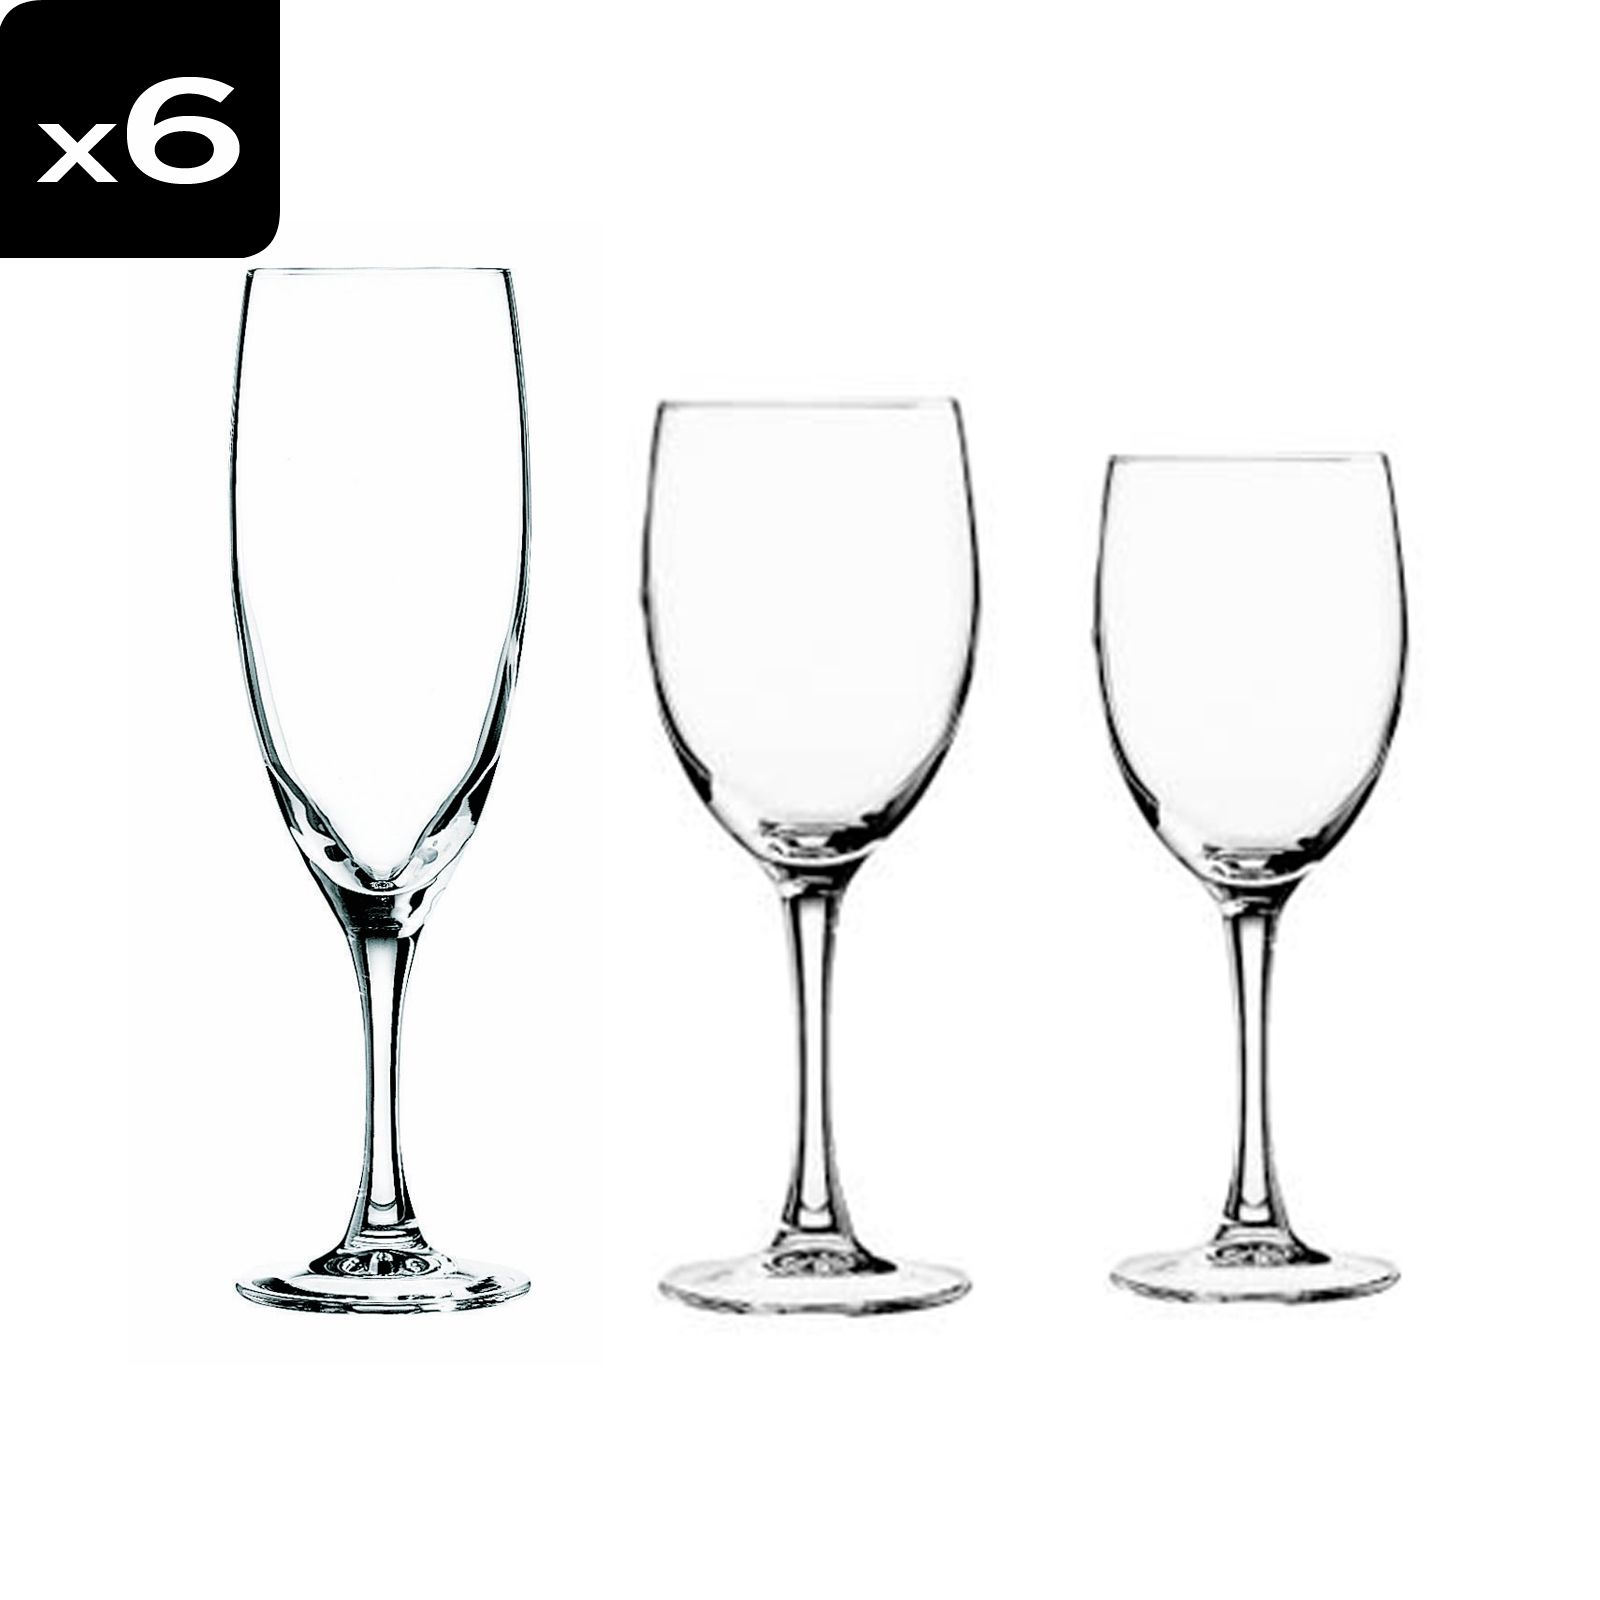 cristal d 39 arques vicomte service de 18 verres pied brandalley. Black Bedroom Furniture Sets. Home Design Ideas